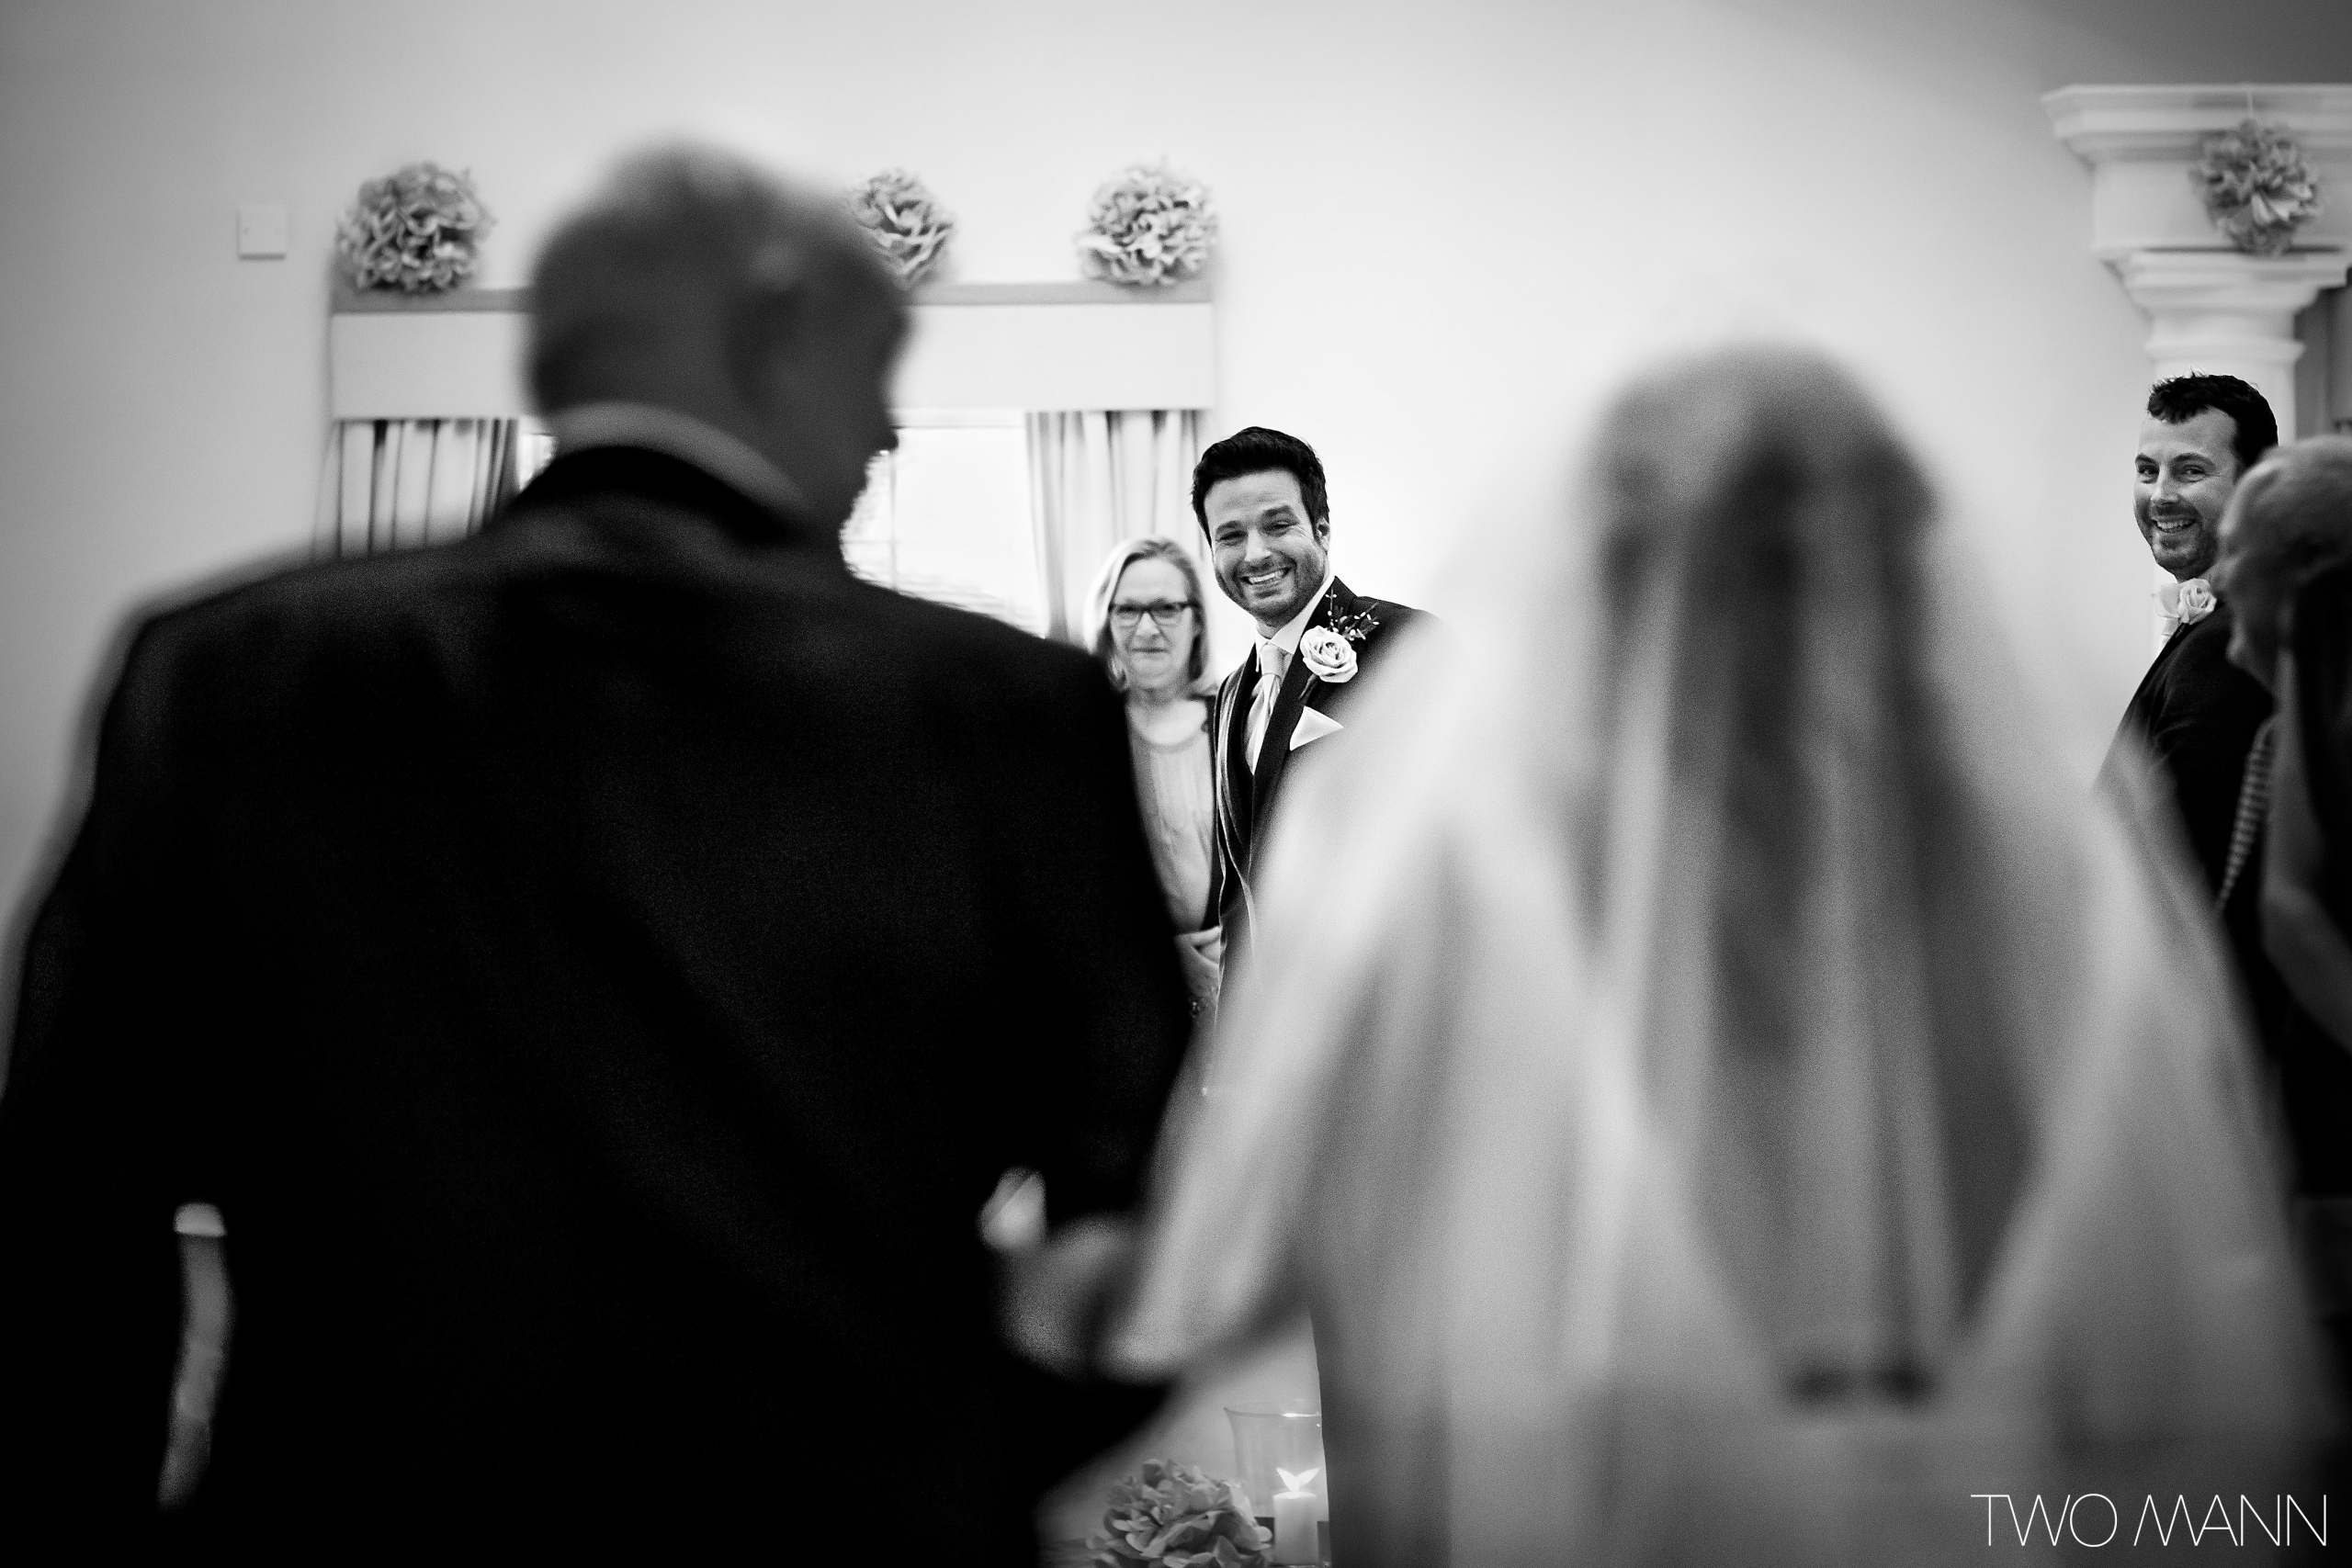 a groom waiting for bride walking down the aisle with her father